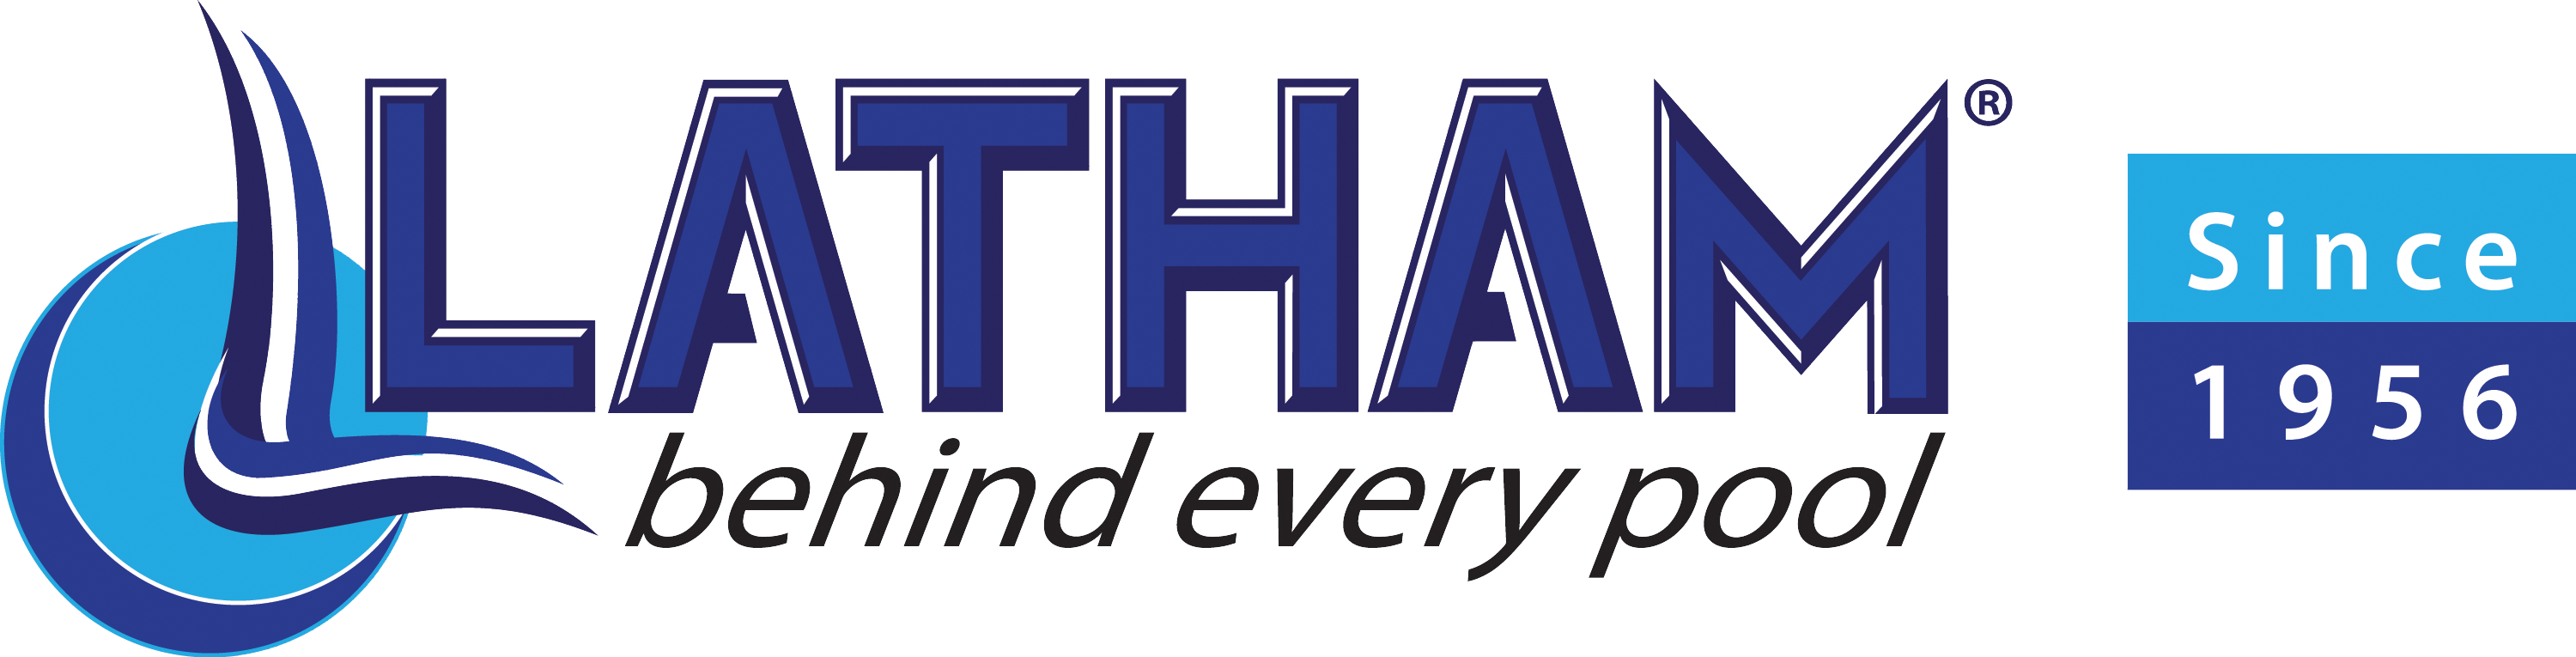 Latham behind every pool since 1956 logo